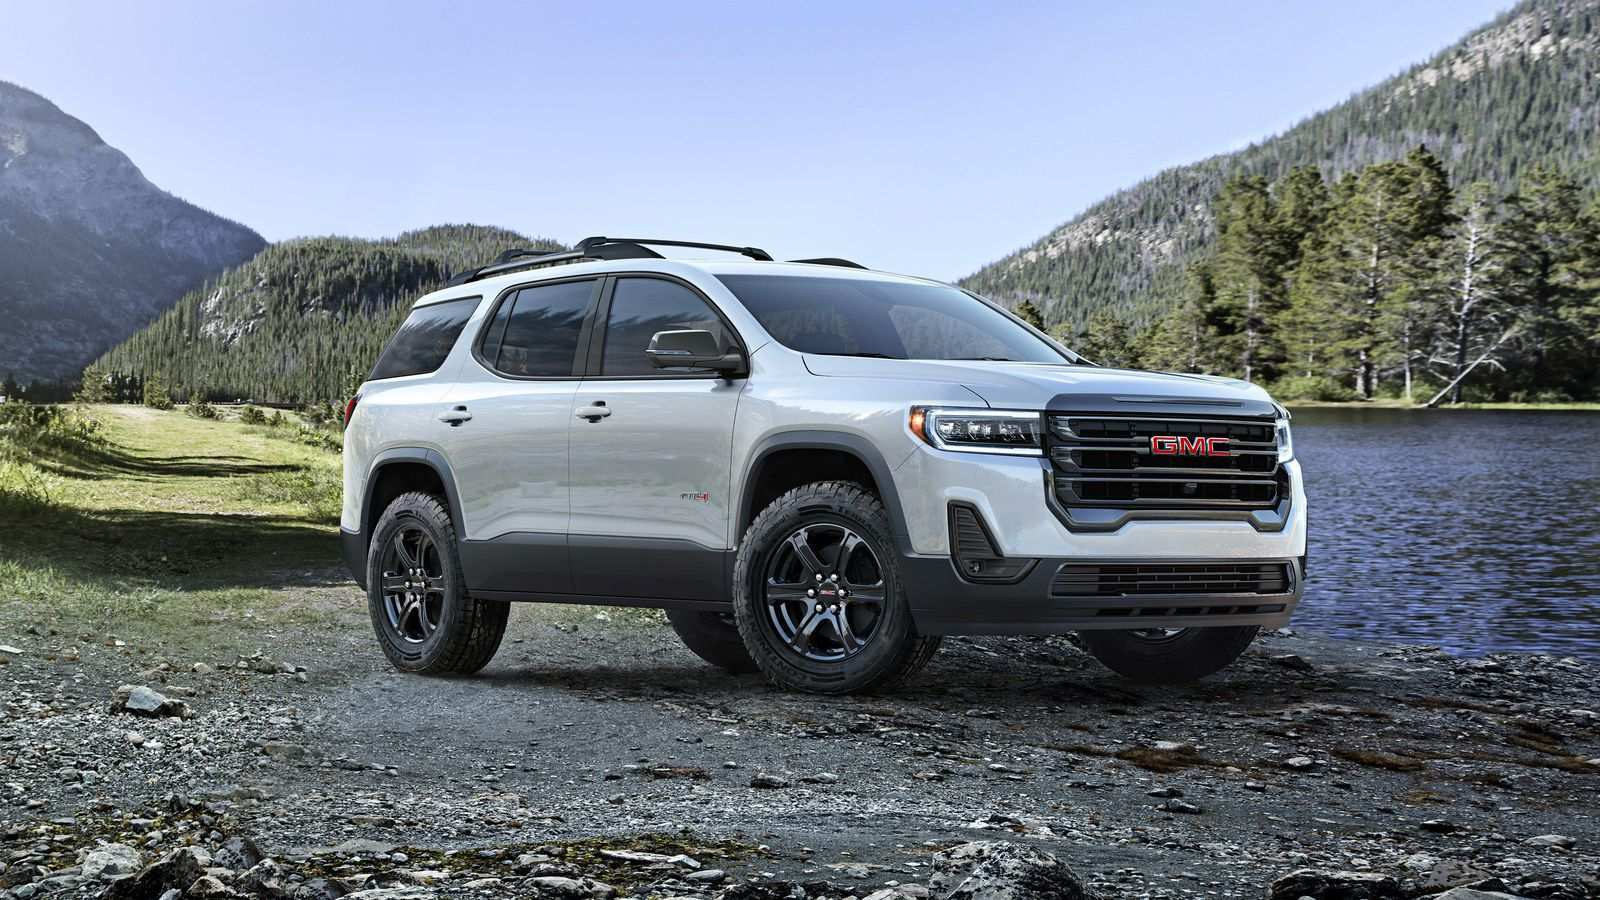 80 The Best GMC New Models 2020 Price Design And Review